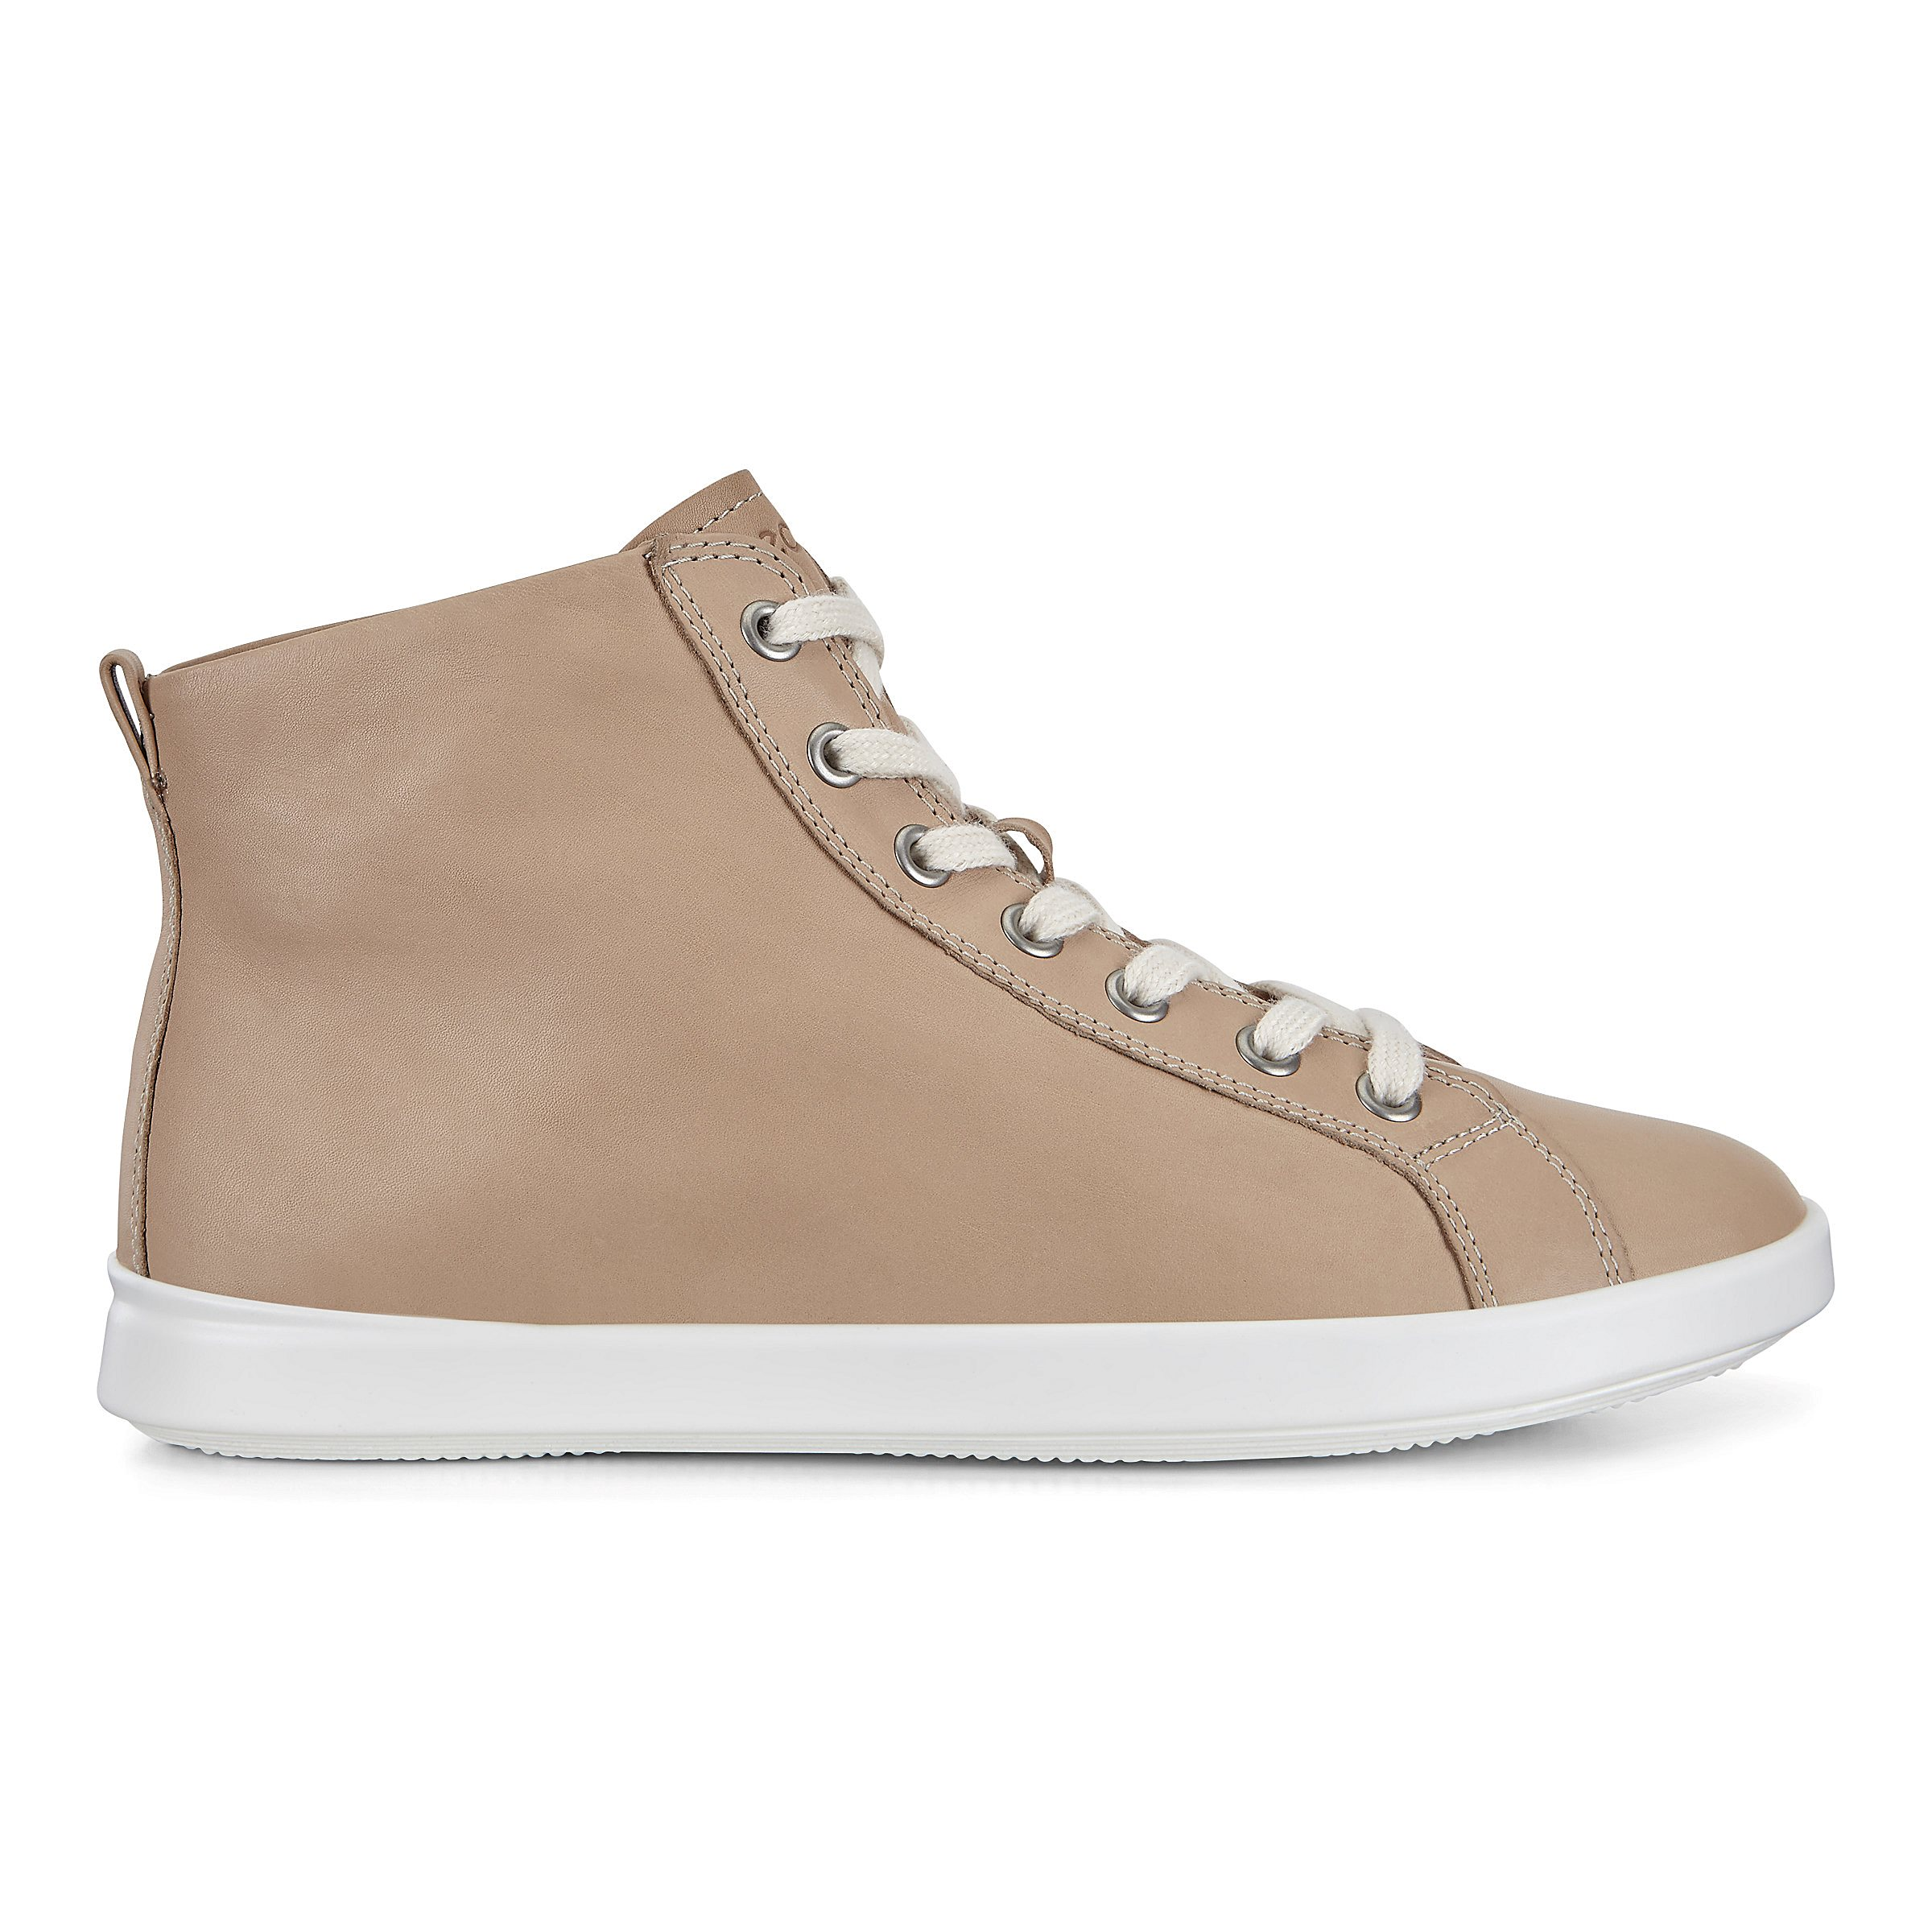 SHOES BOOTS ECCO LEISURE